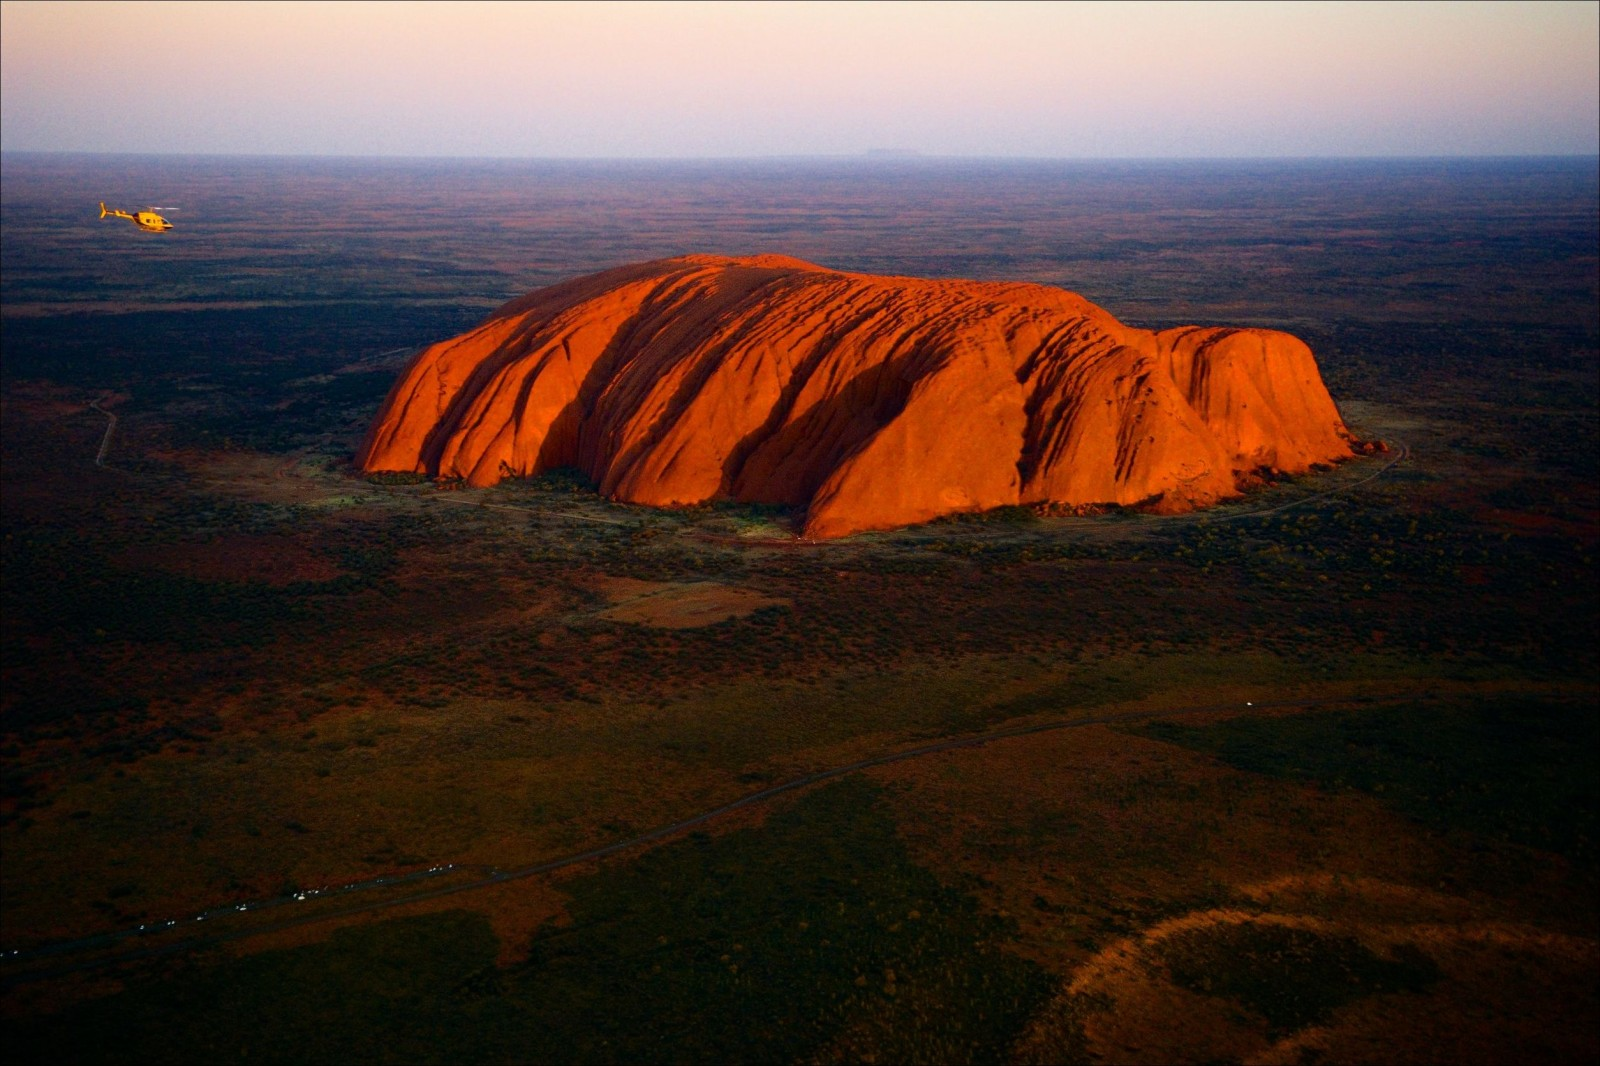 The Red Centre: Heart of Australia